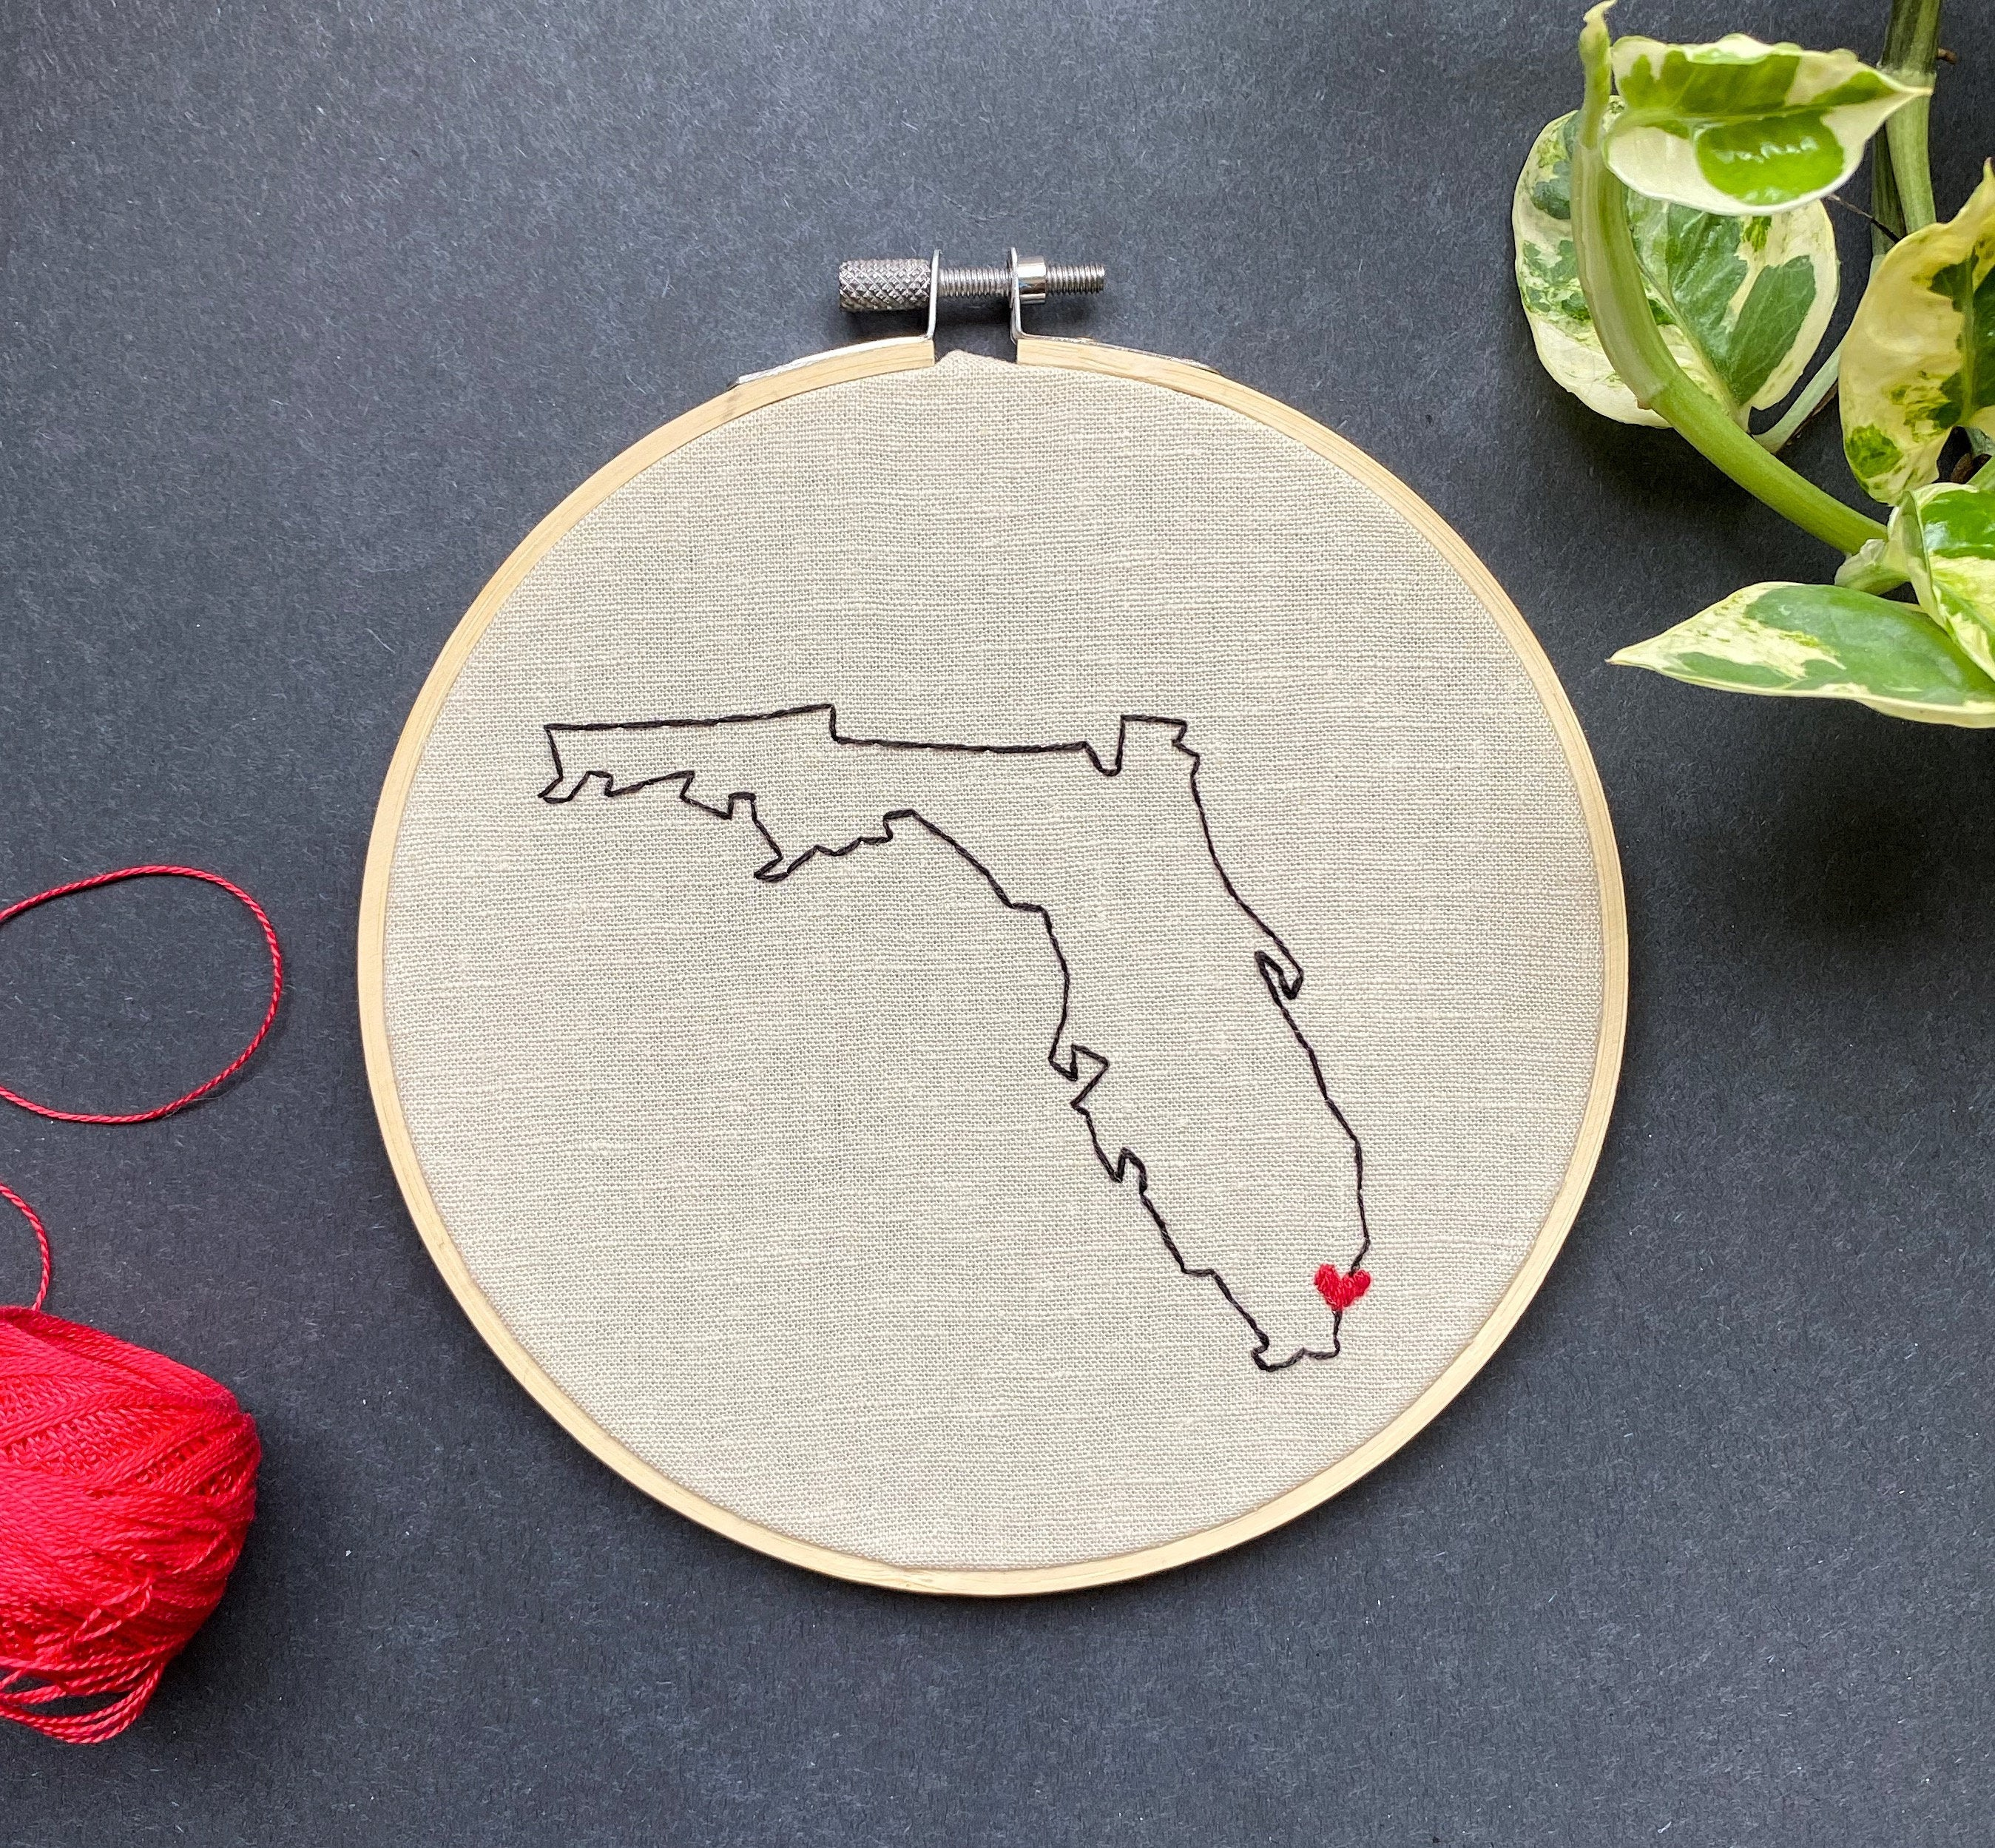 U.S states hoop collection ❞Florida, Miami